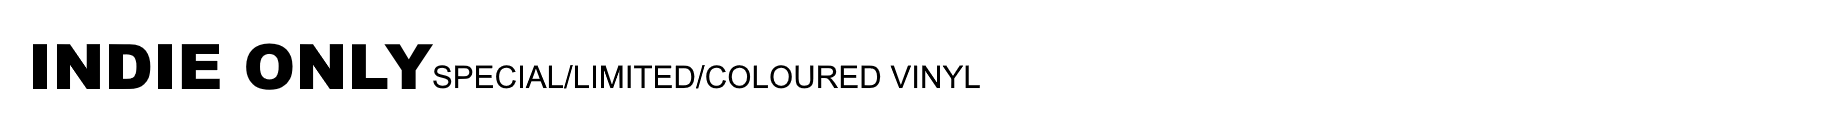 Indie Only - Special/Limited/Coloured Vinyl